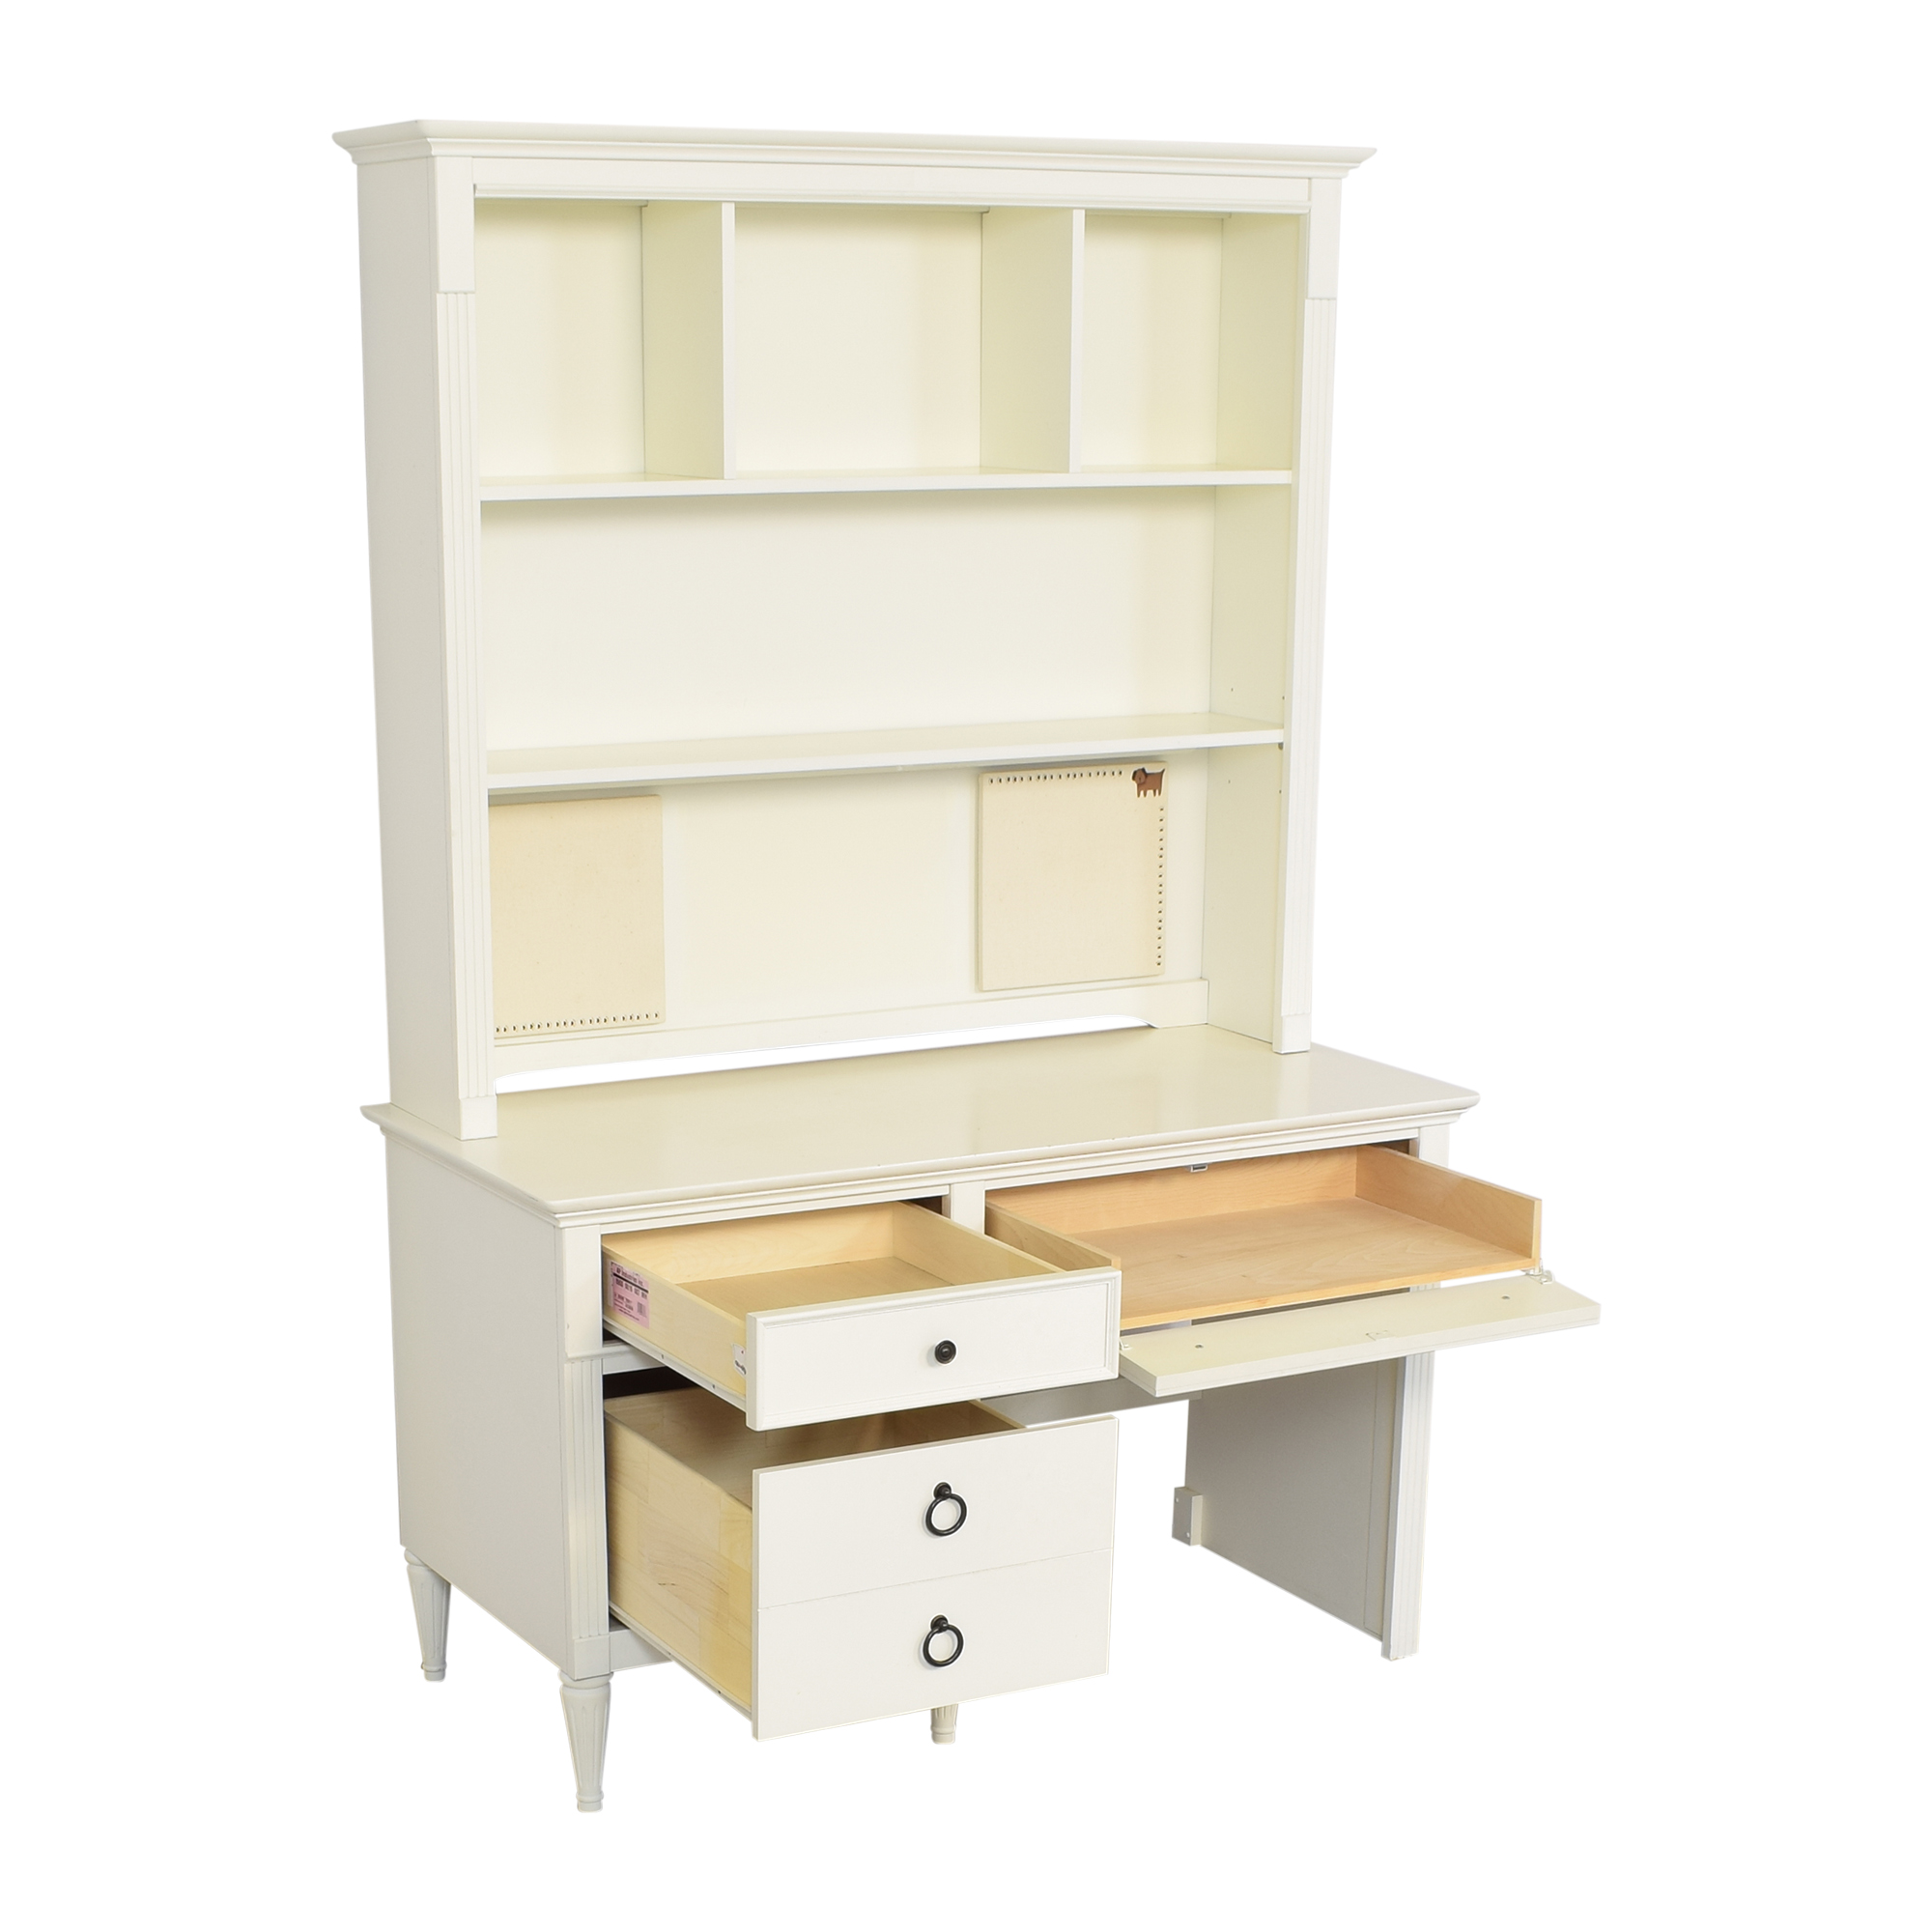 AP Industries Mary-Kate and Ashley Collection Desk with Hutch discount